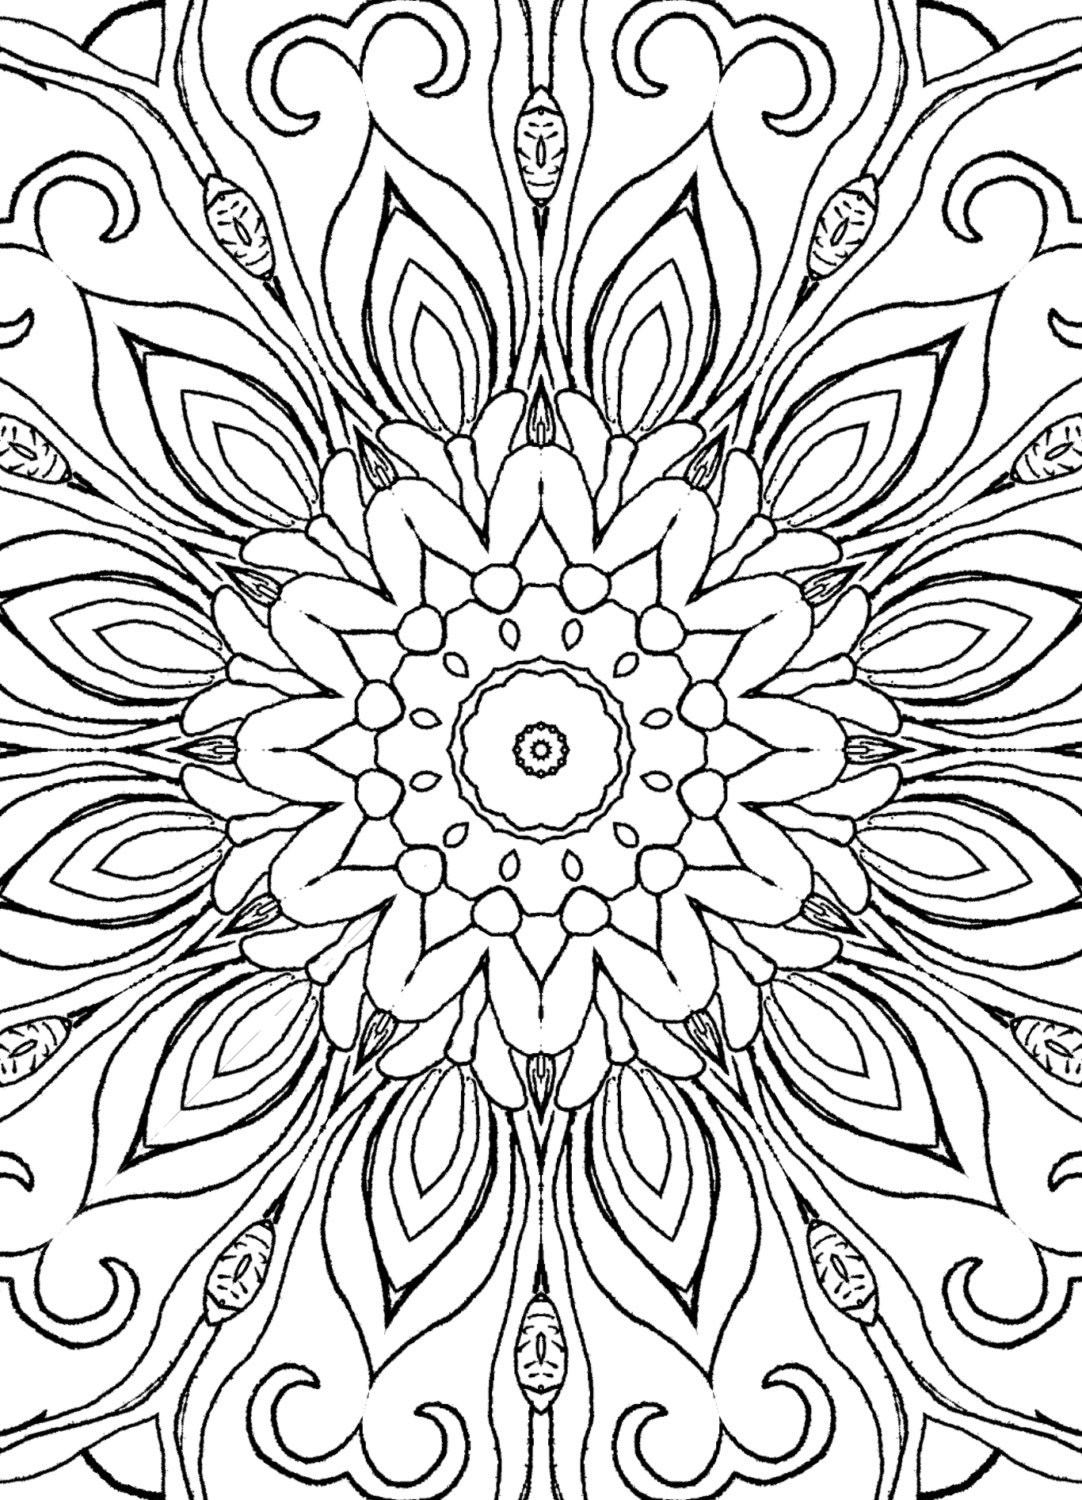 coloring pages patterns | 25 Coloring Pages including Mandalas Geometric Designs Rug